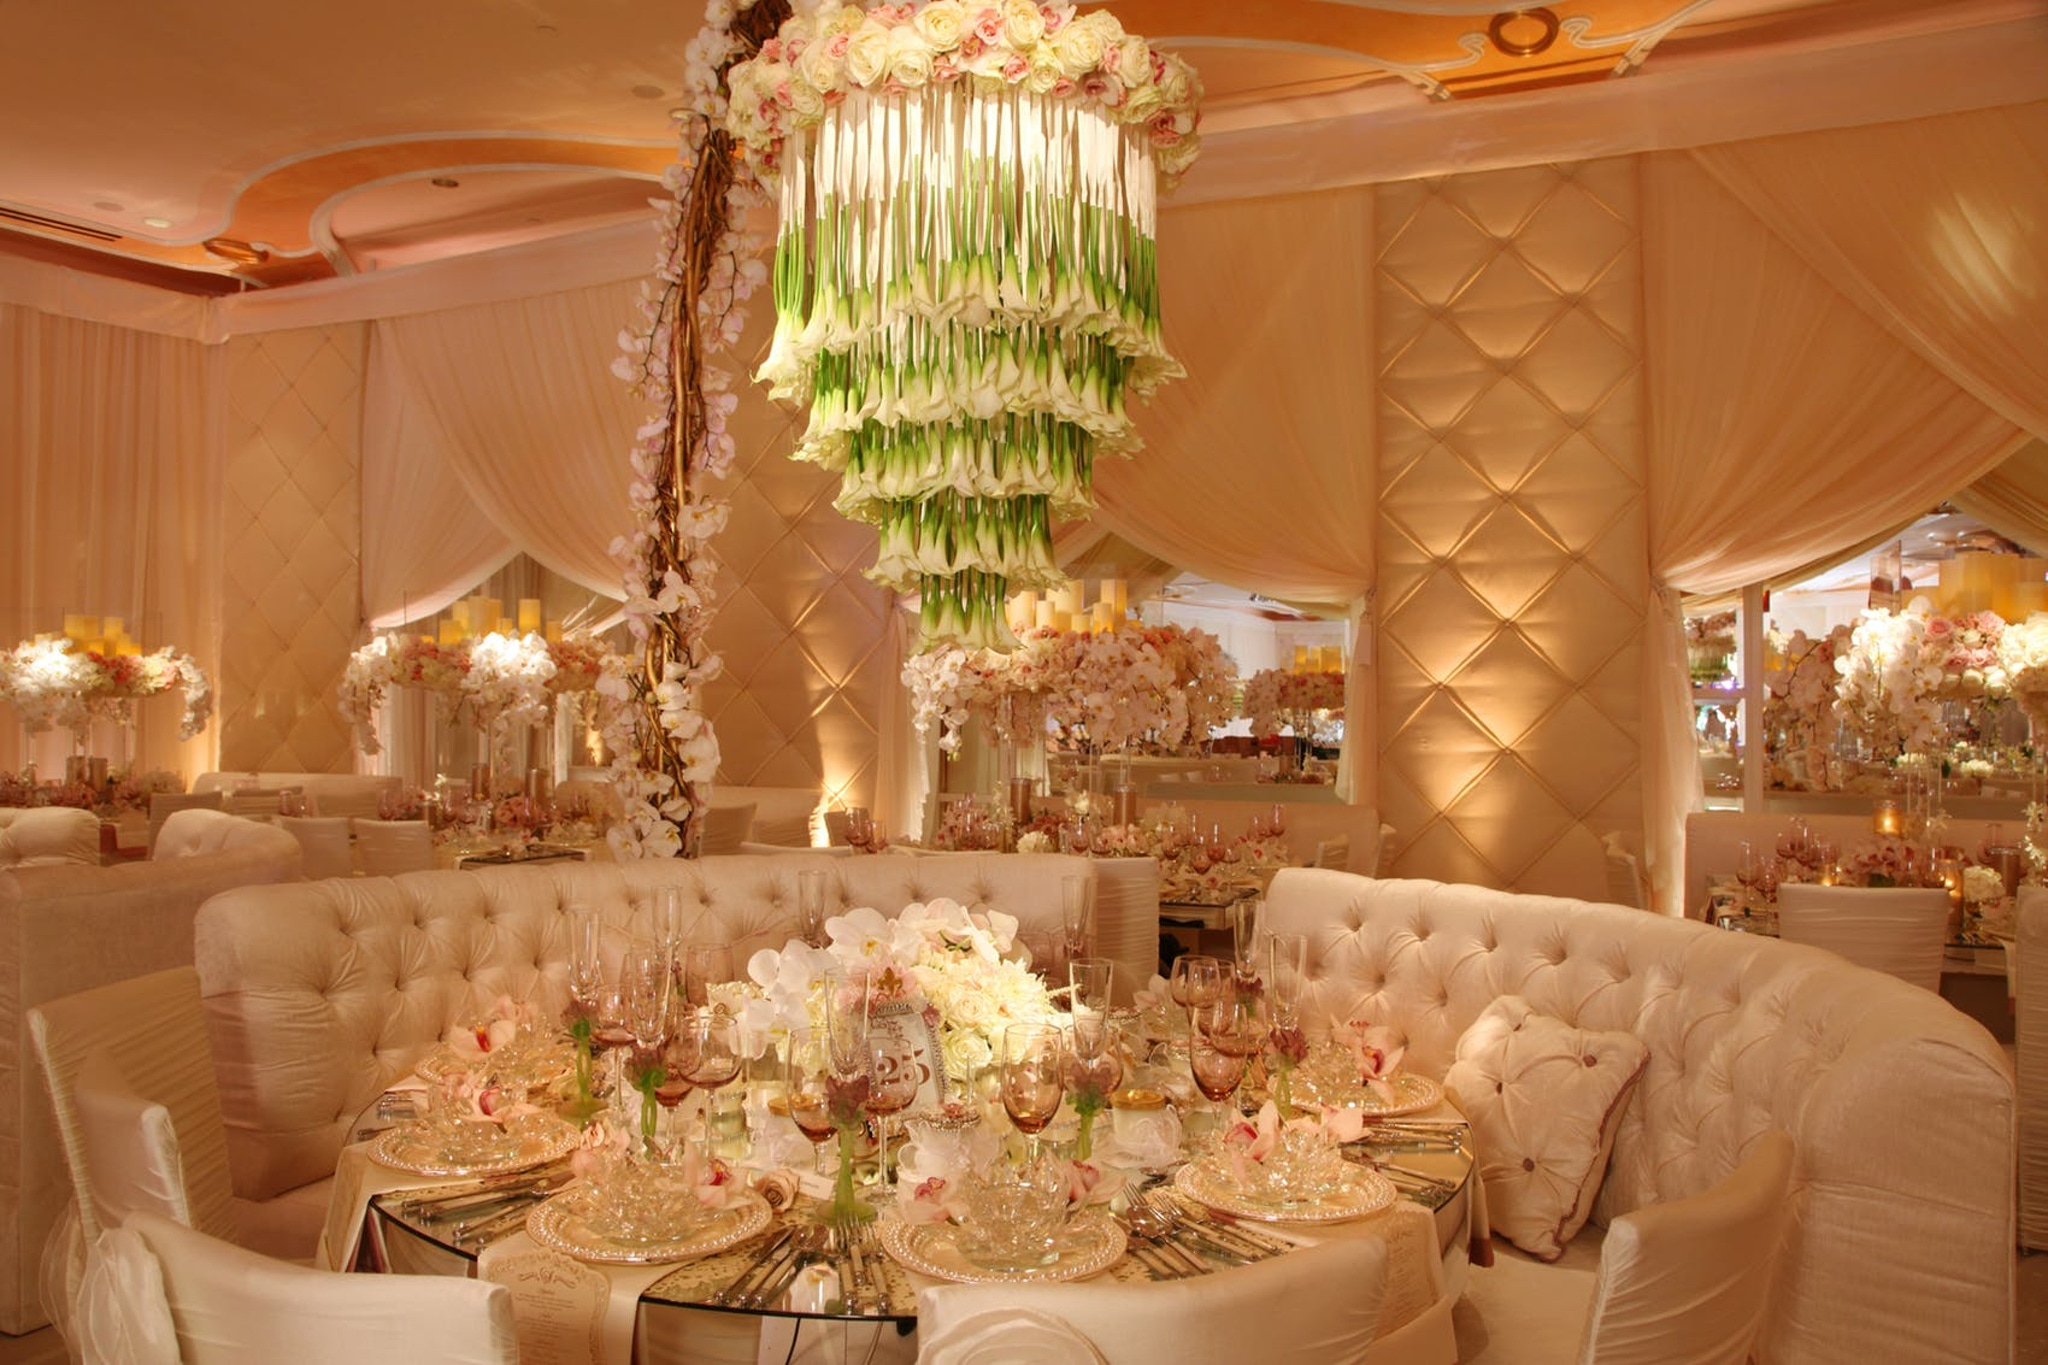 tulip chandelier over white table